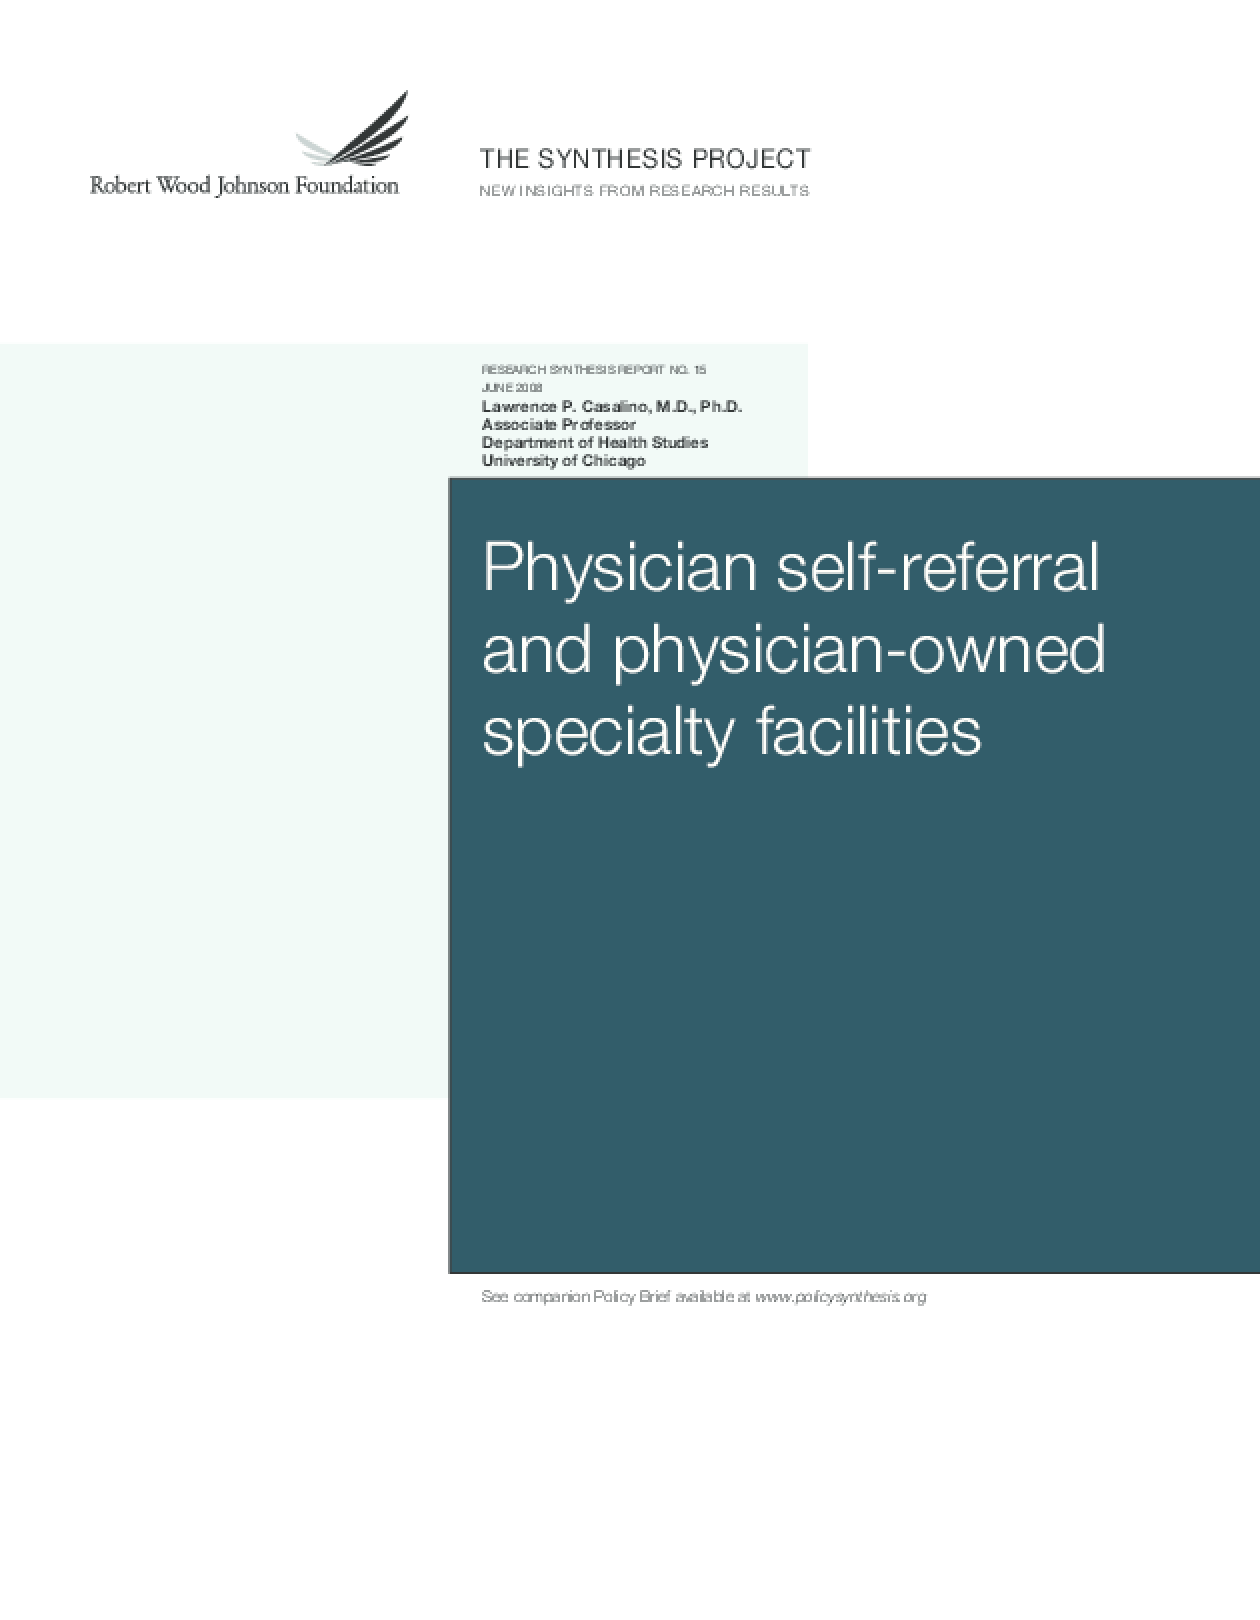 Physician Self-Referral and Physician-Owned Specialty Facilities